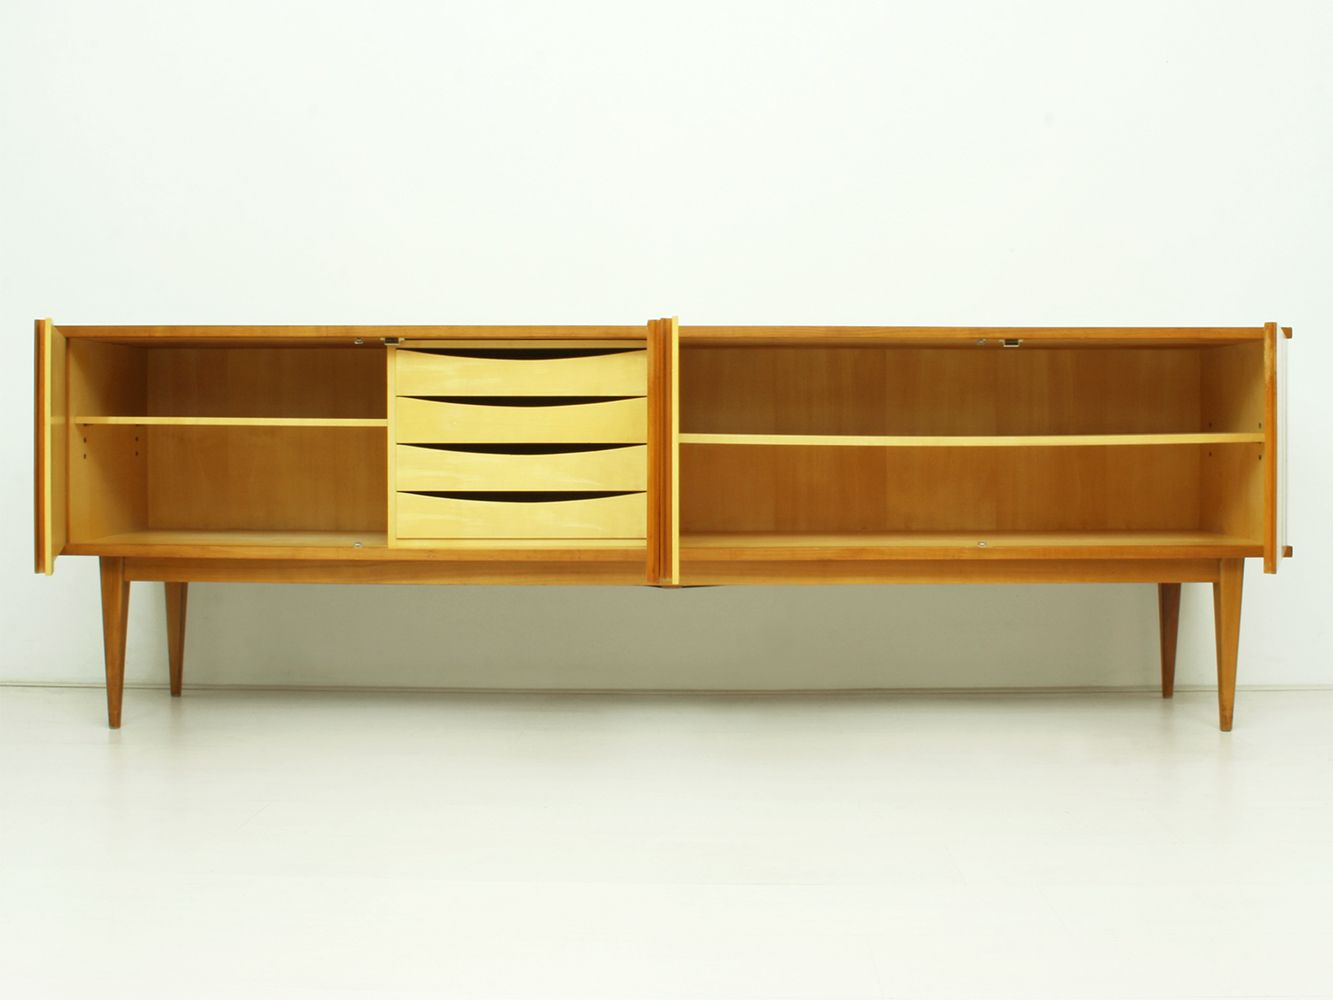 deutsches kirschholz sideboard von wk m bel 1962 bei pamono kaufen. Black Bedroom Furniture Sets. Home Design Ideas